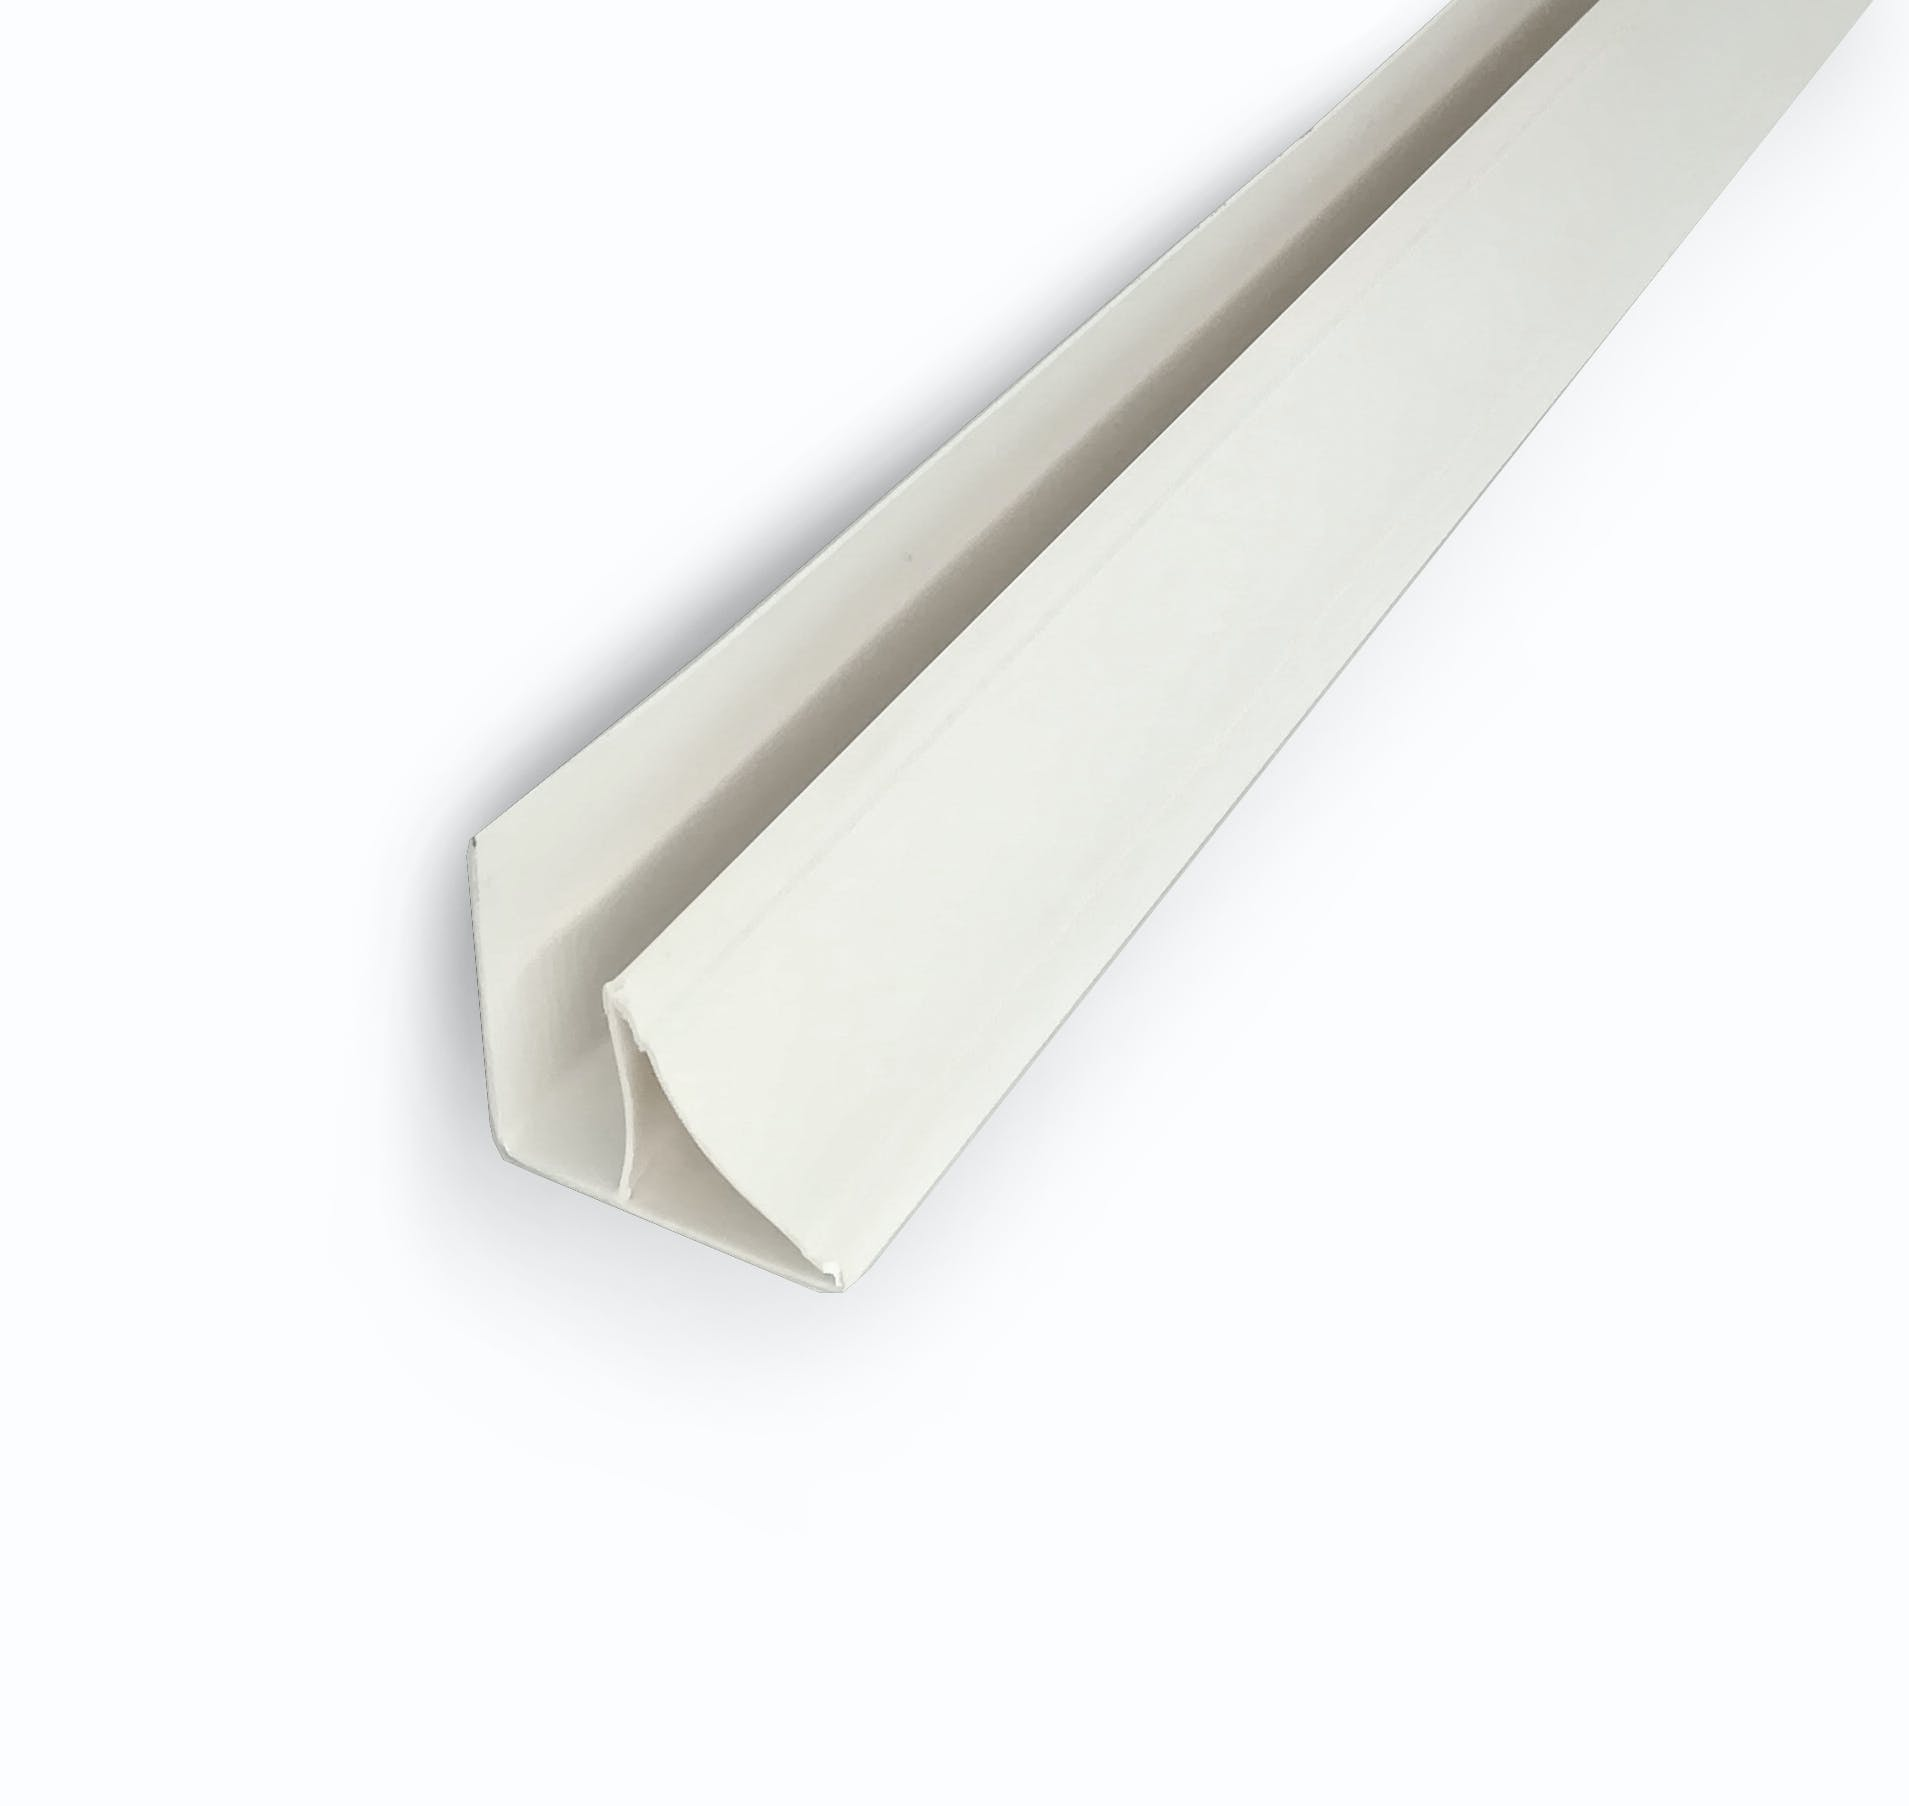 Ceiling Panel Coving Trim- White PVC